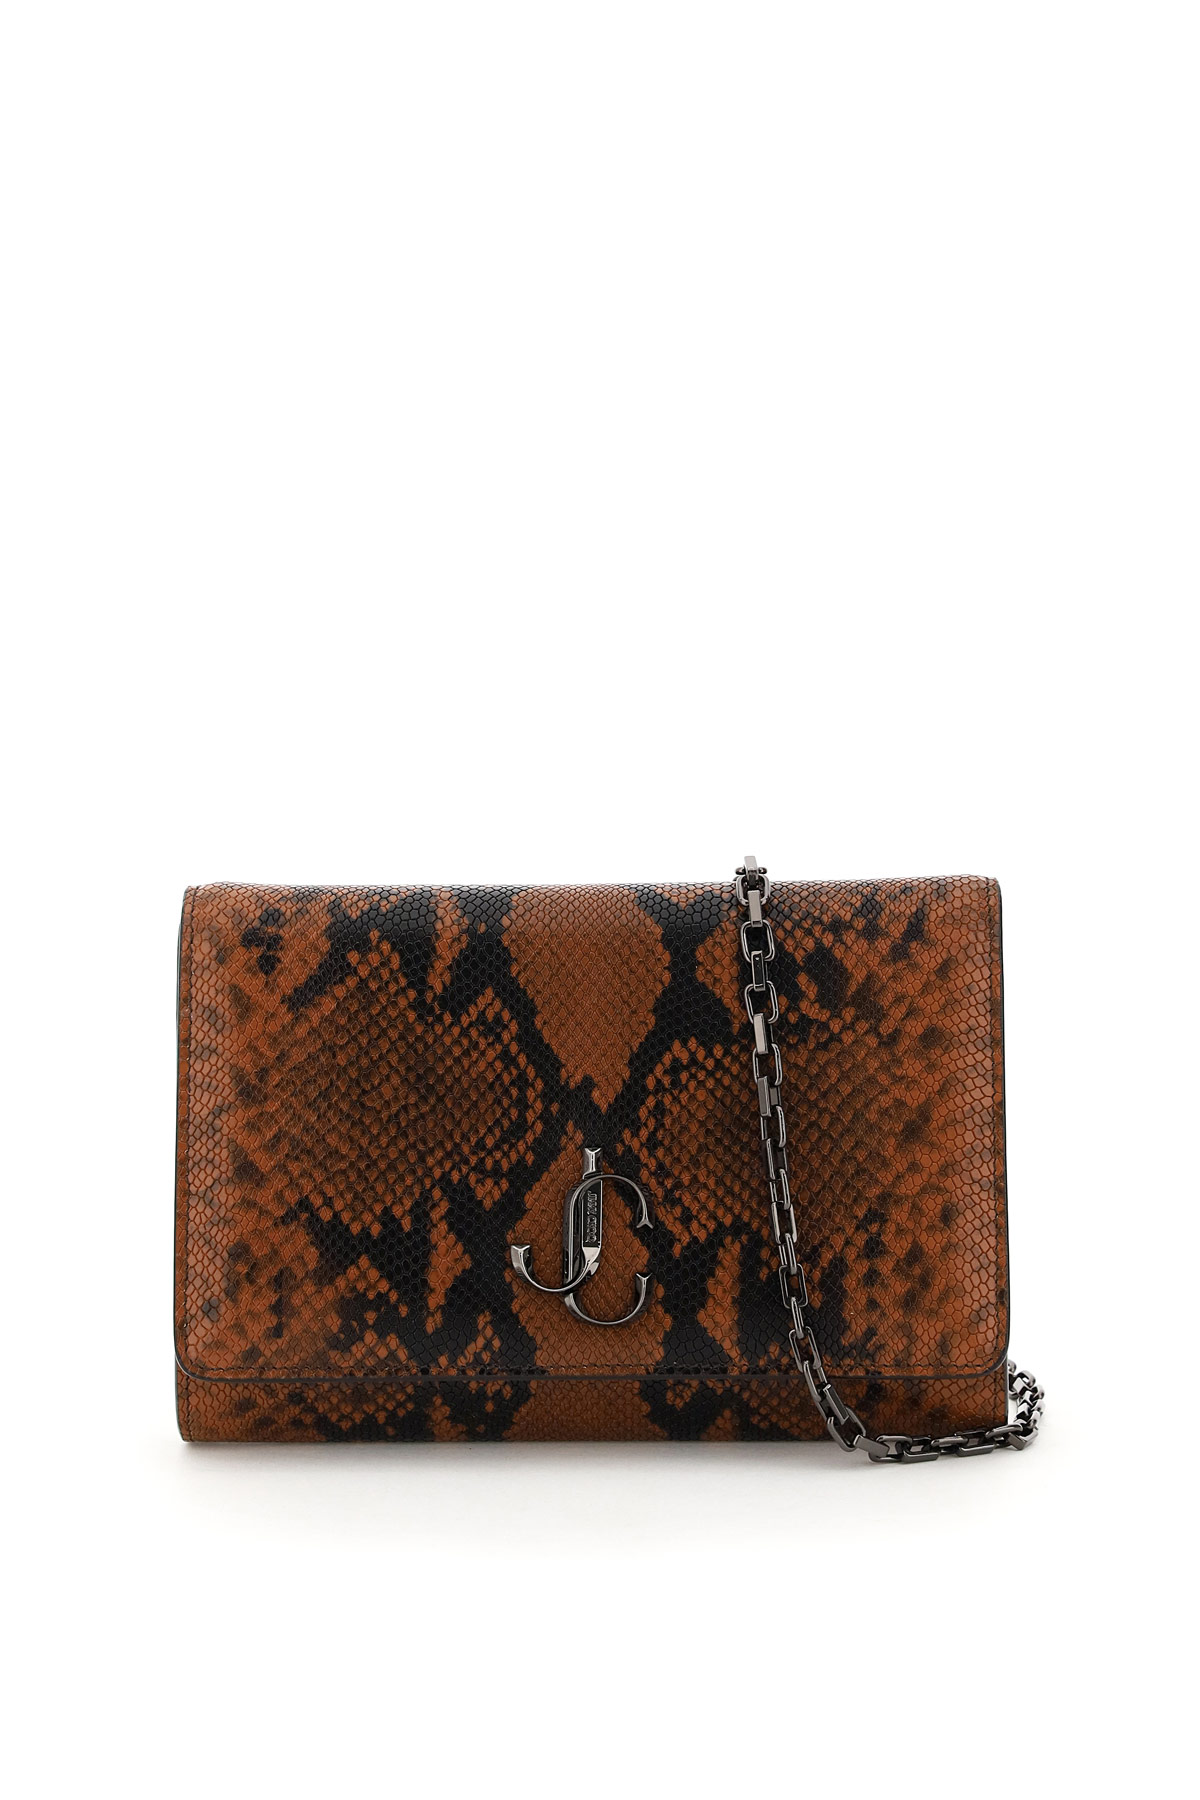 Jimmy Choo Leathers VARENNE CLUTCH WITH CHAIN